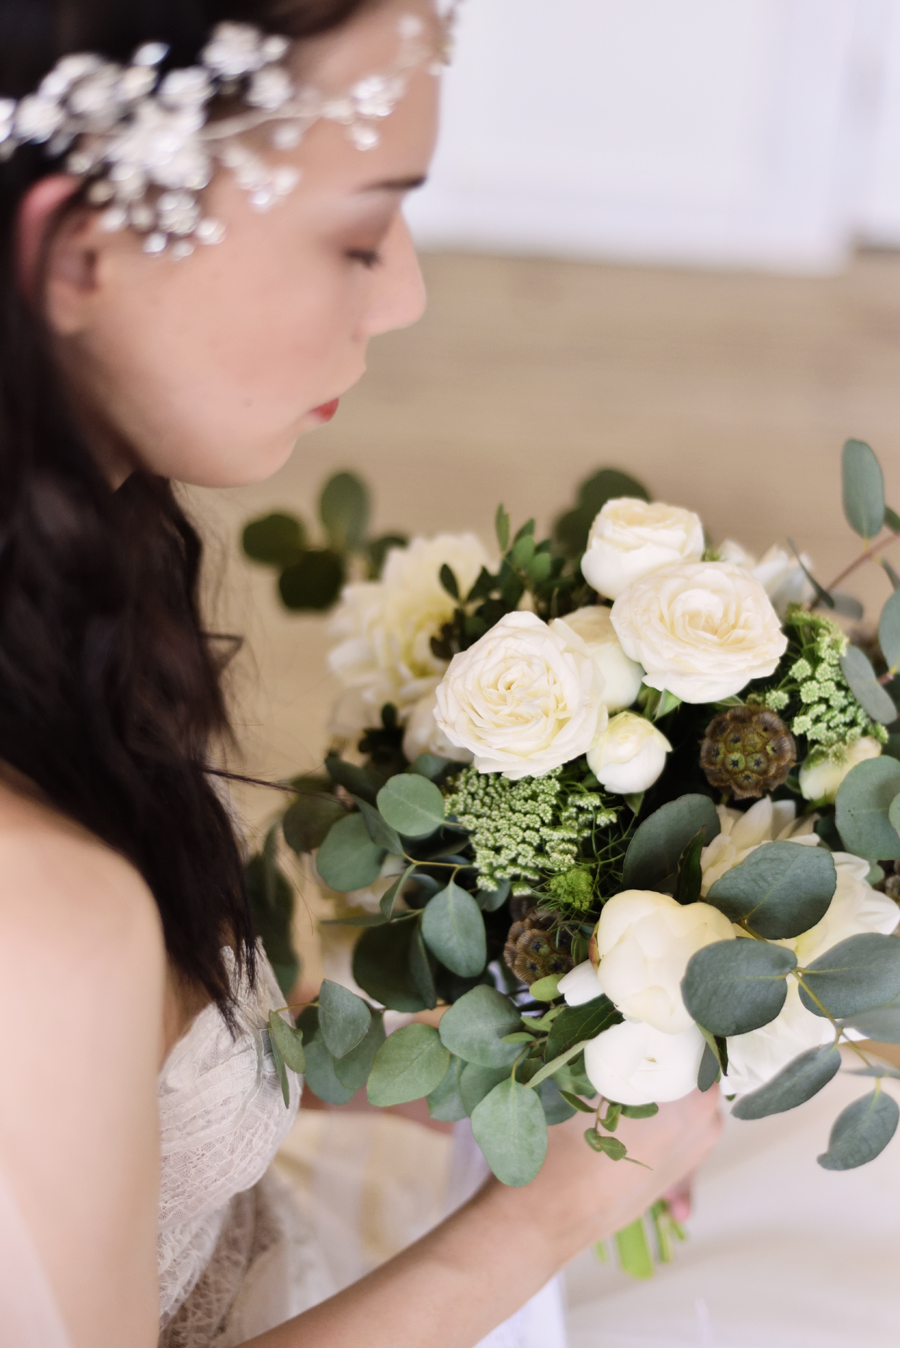 Marina Walker Photography's styled shoot with succulents and affordable details for a minimalist boho wedding (28)